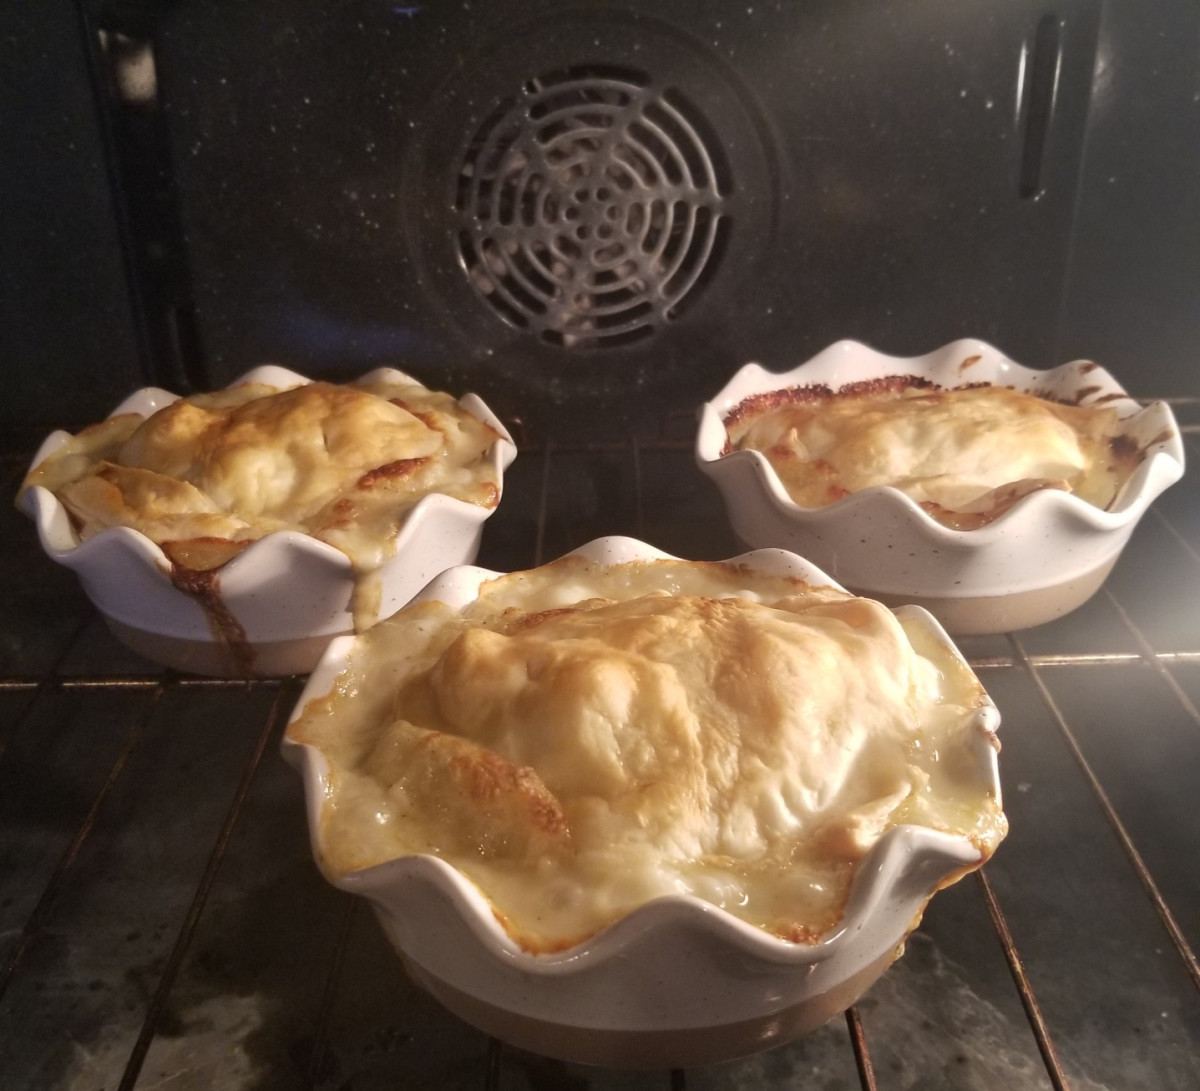 I took the foil from underneath the pot pies for the picture, but remember to cook them on top of foil, so the sauce does not bubble over on your oven. These are a favorite in our family.